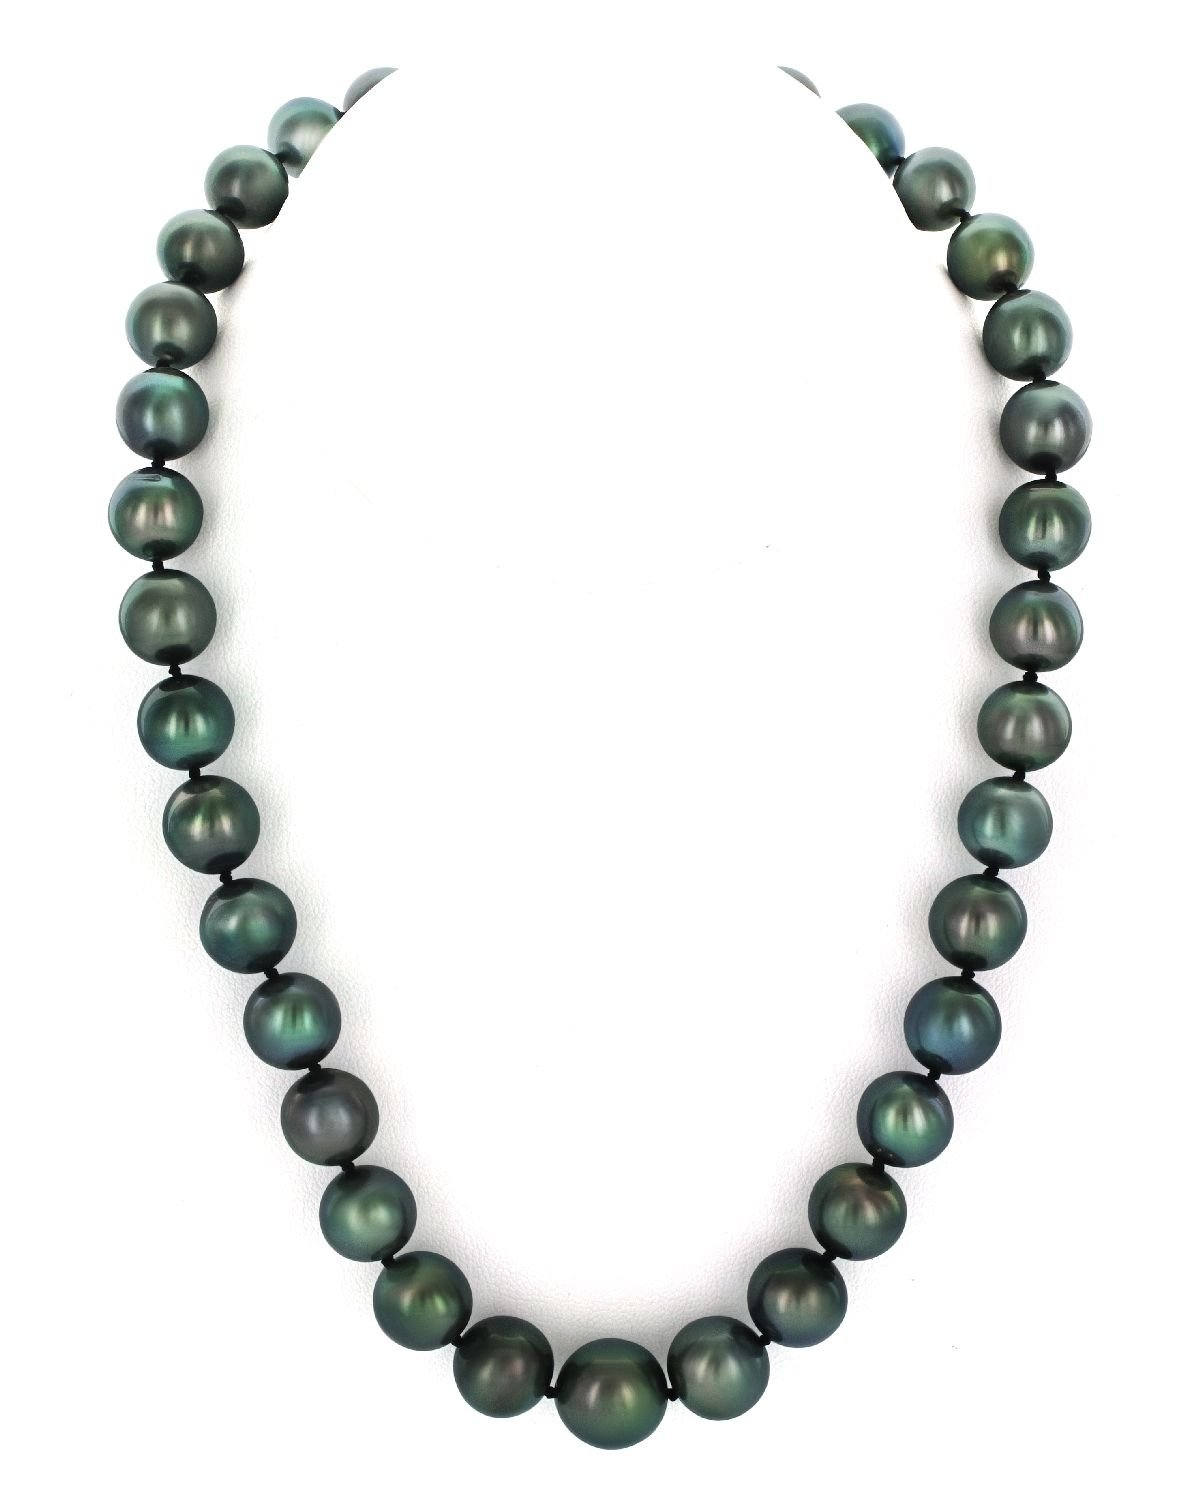 14K Gold 11-13mm Tahitian South Sea Round Cultured Pearl Necklace - 18'' Princess Length